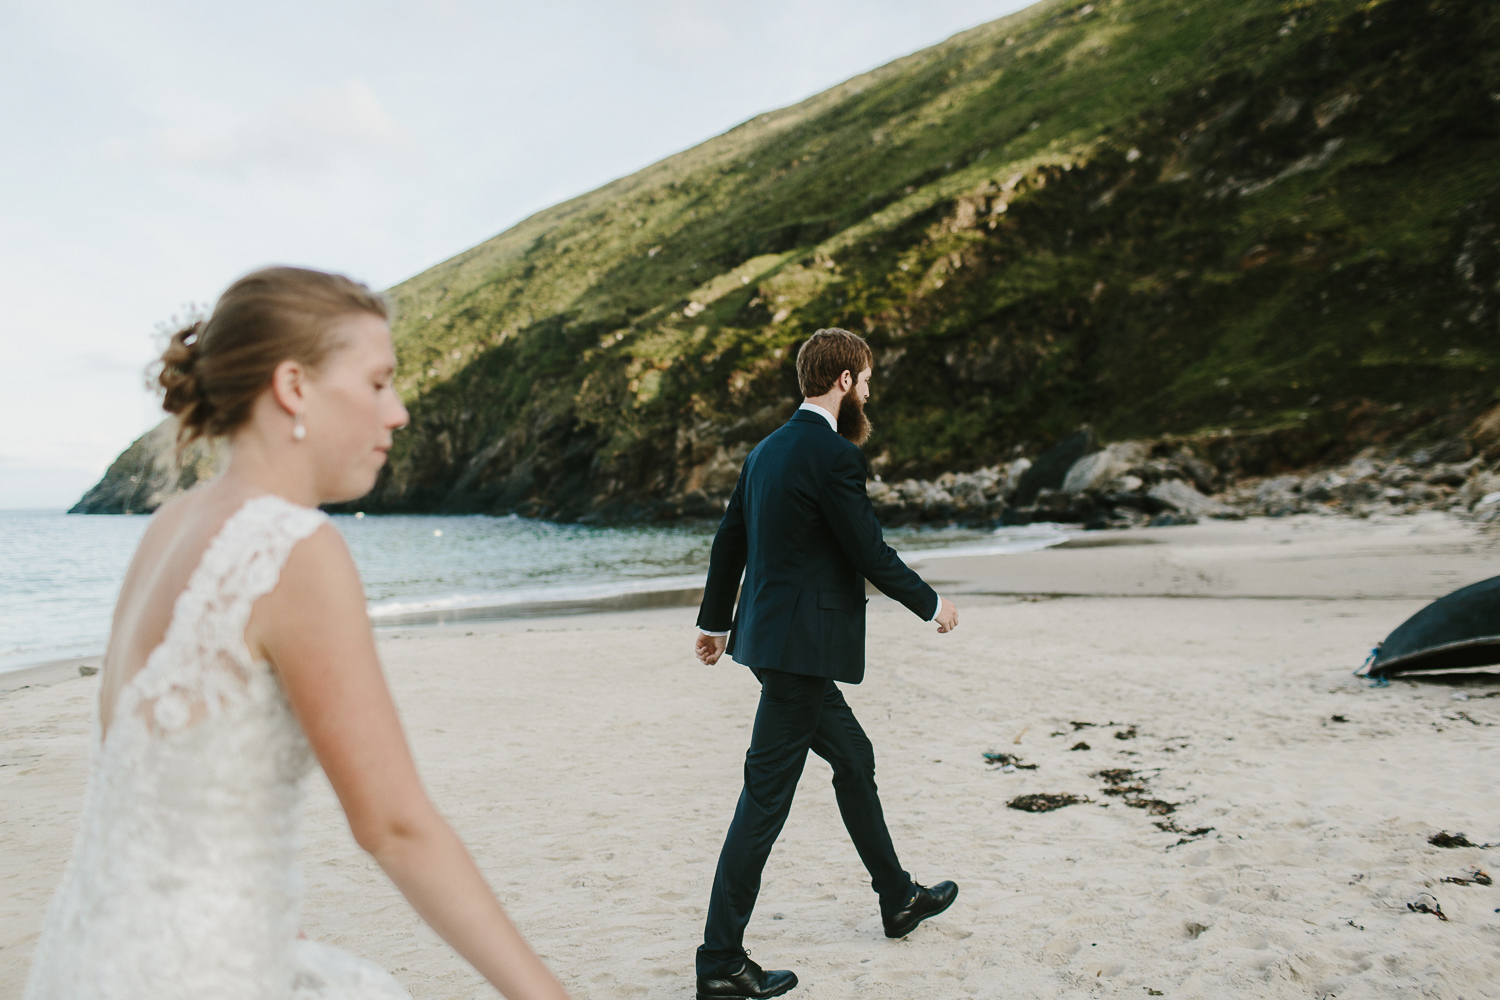 Achill-Island-Adventure-Wedding-Photographer-305.jpg